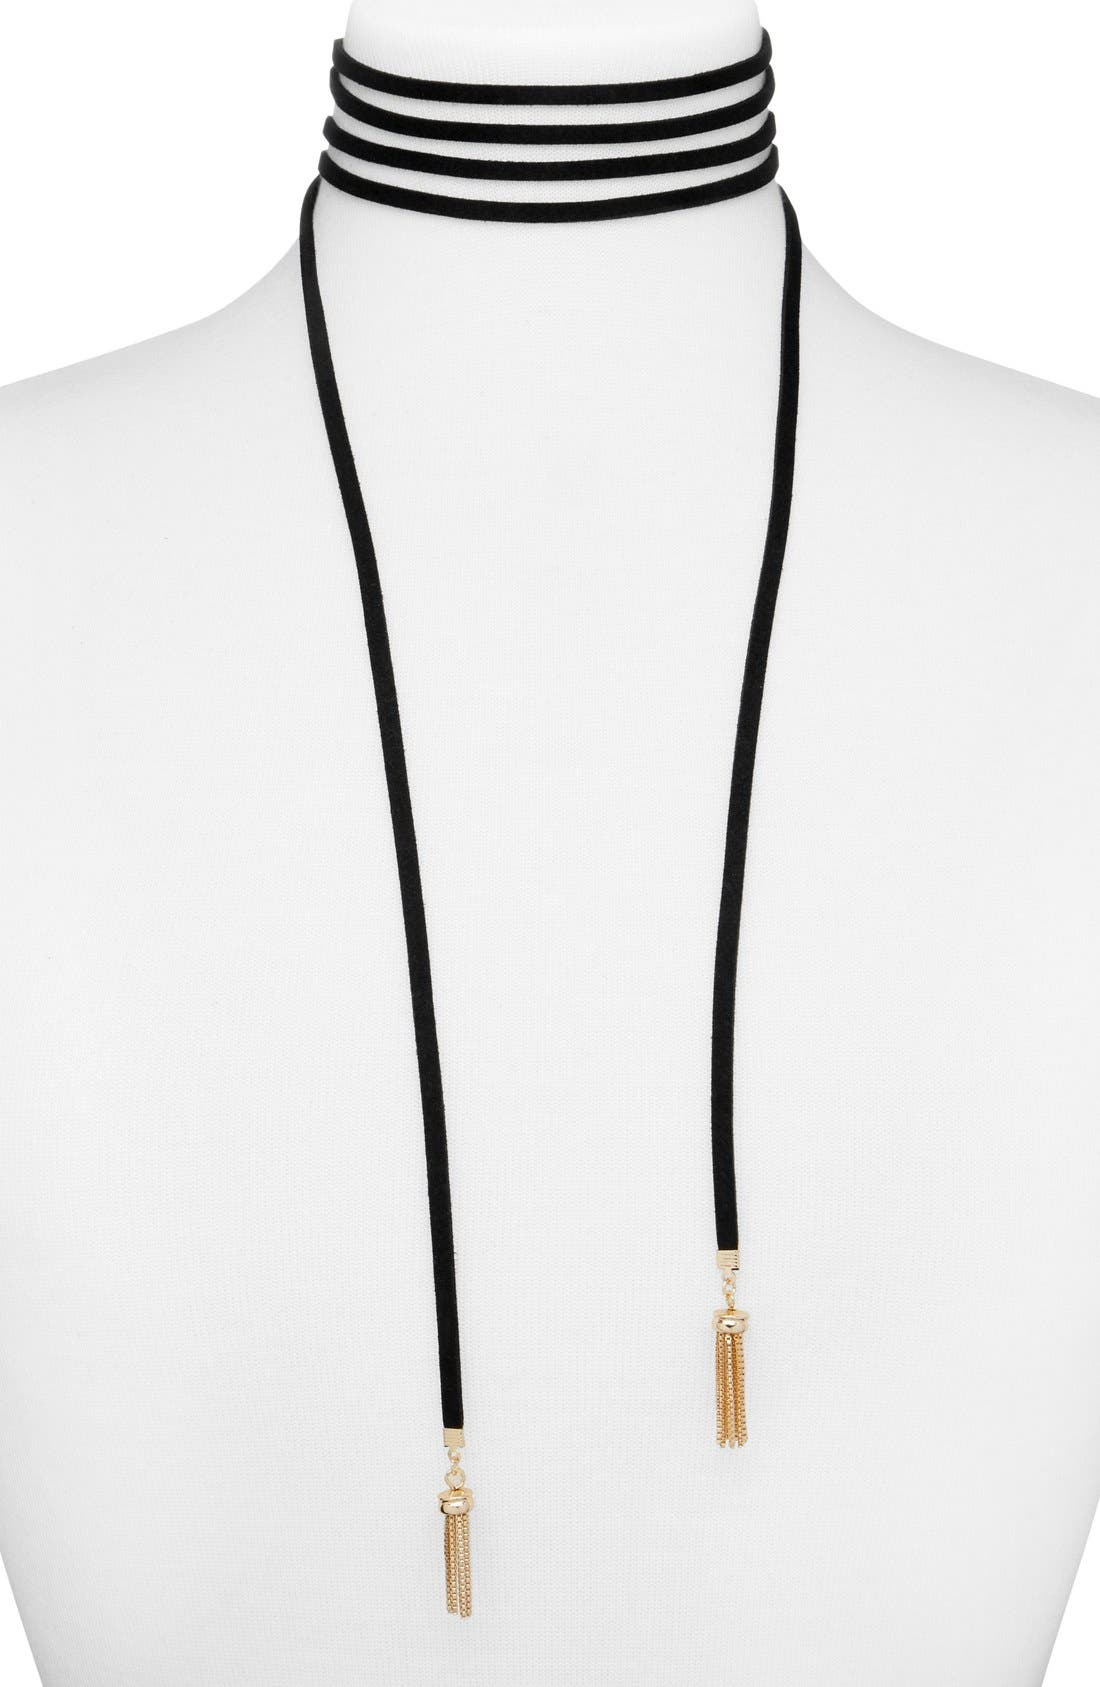 BAUBLEBAR Lariat Choker Necklace